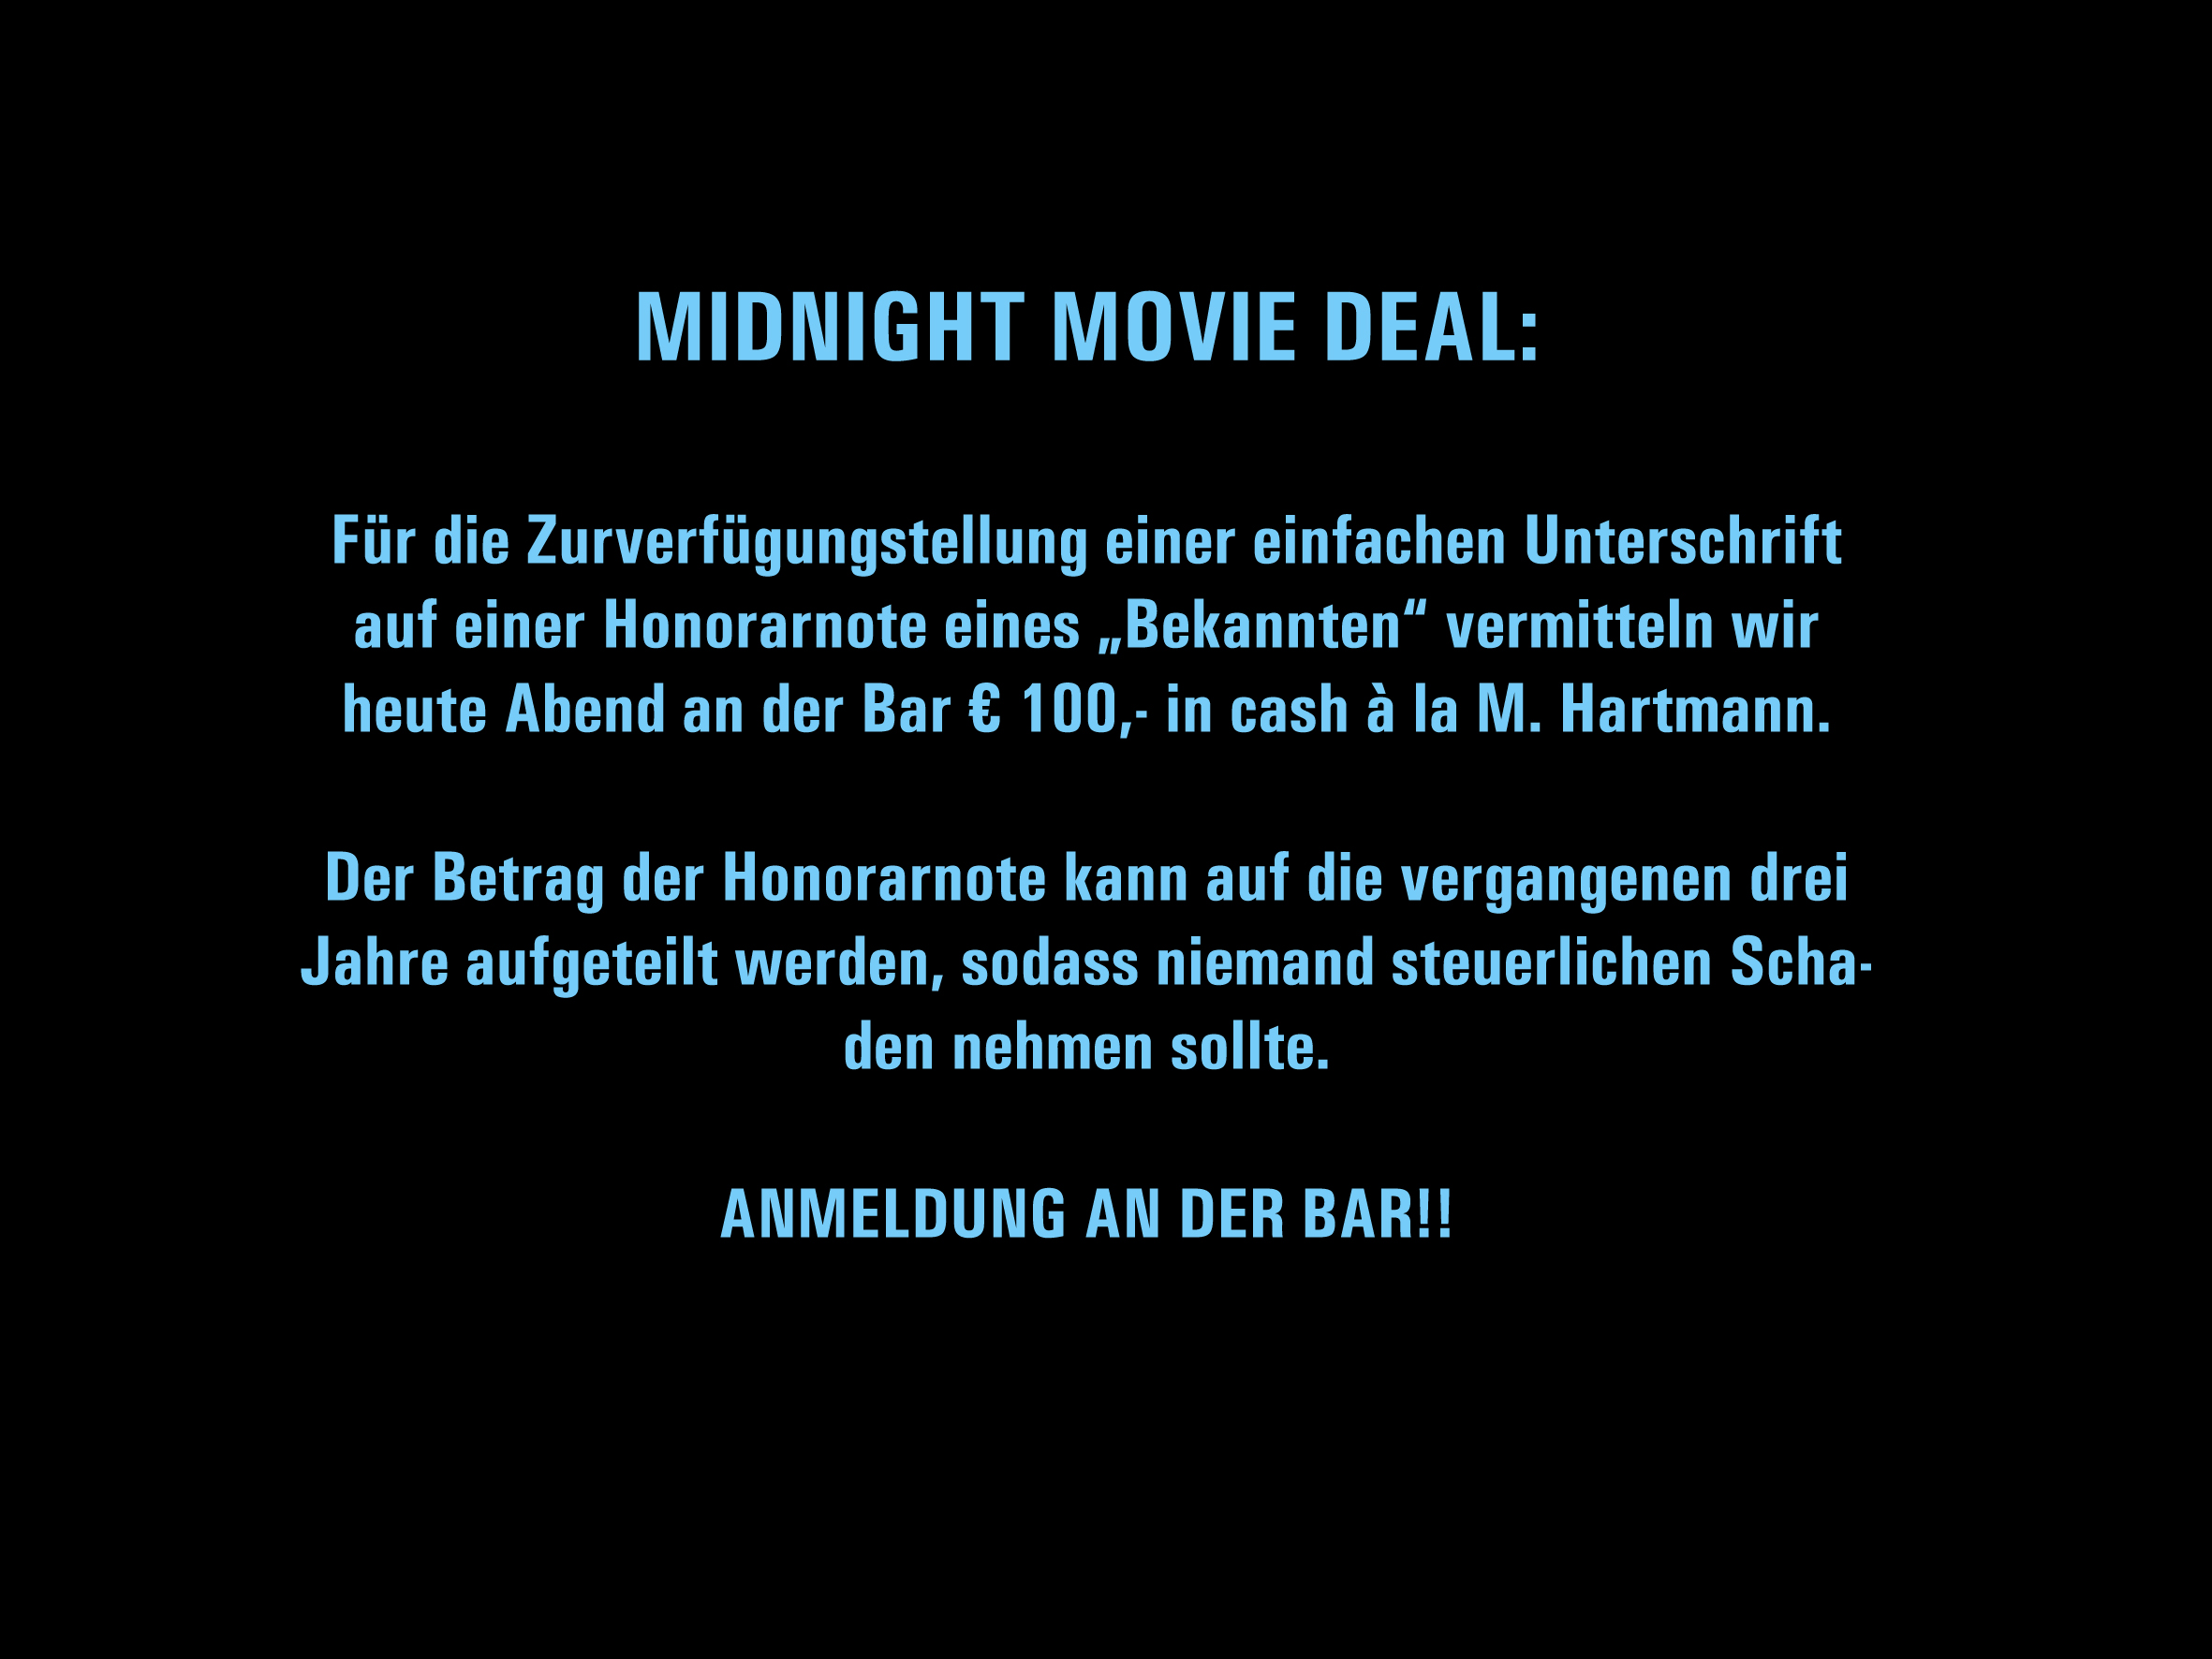 MIDNIGHT MOVIE